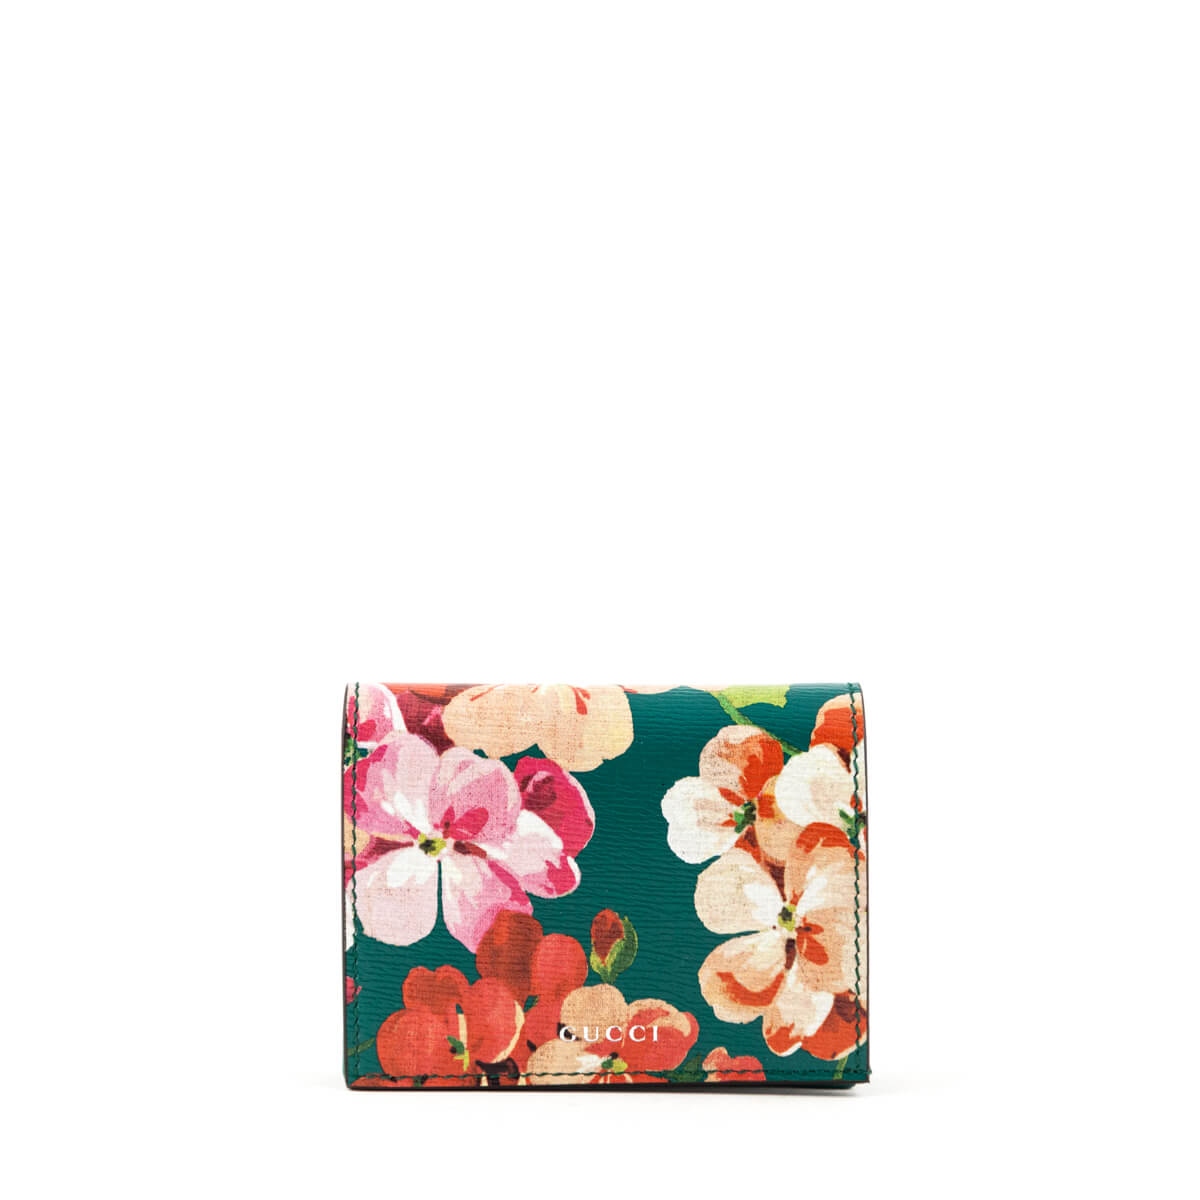 3a24b7d439a Gucci Teal Green Calfskin Shanghai Blooms Line Compact Wallet - LOVE that  BAG - Preowned Authentic ...